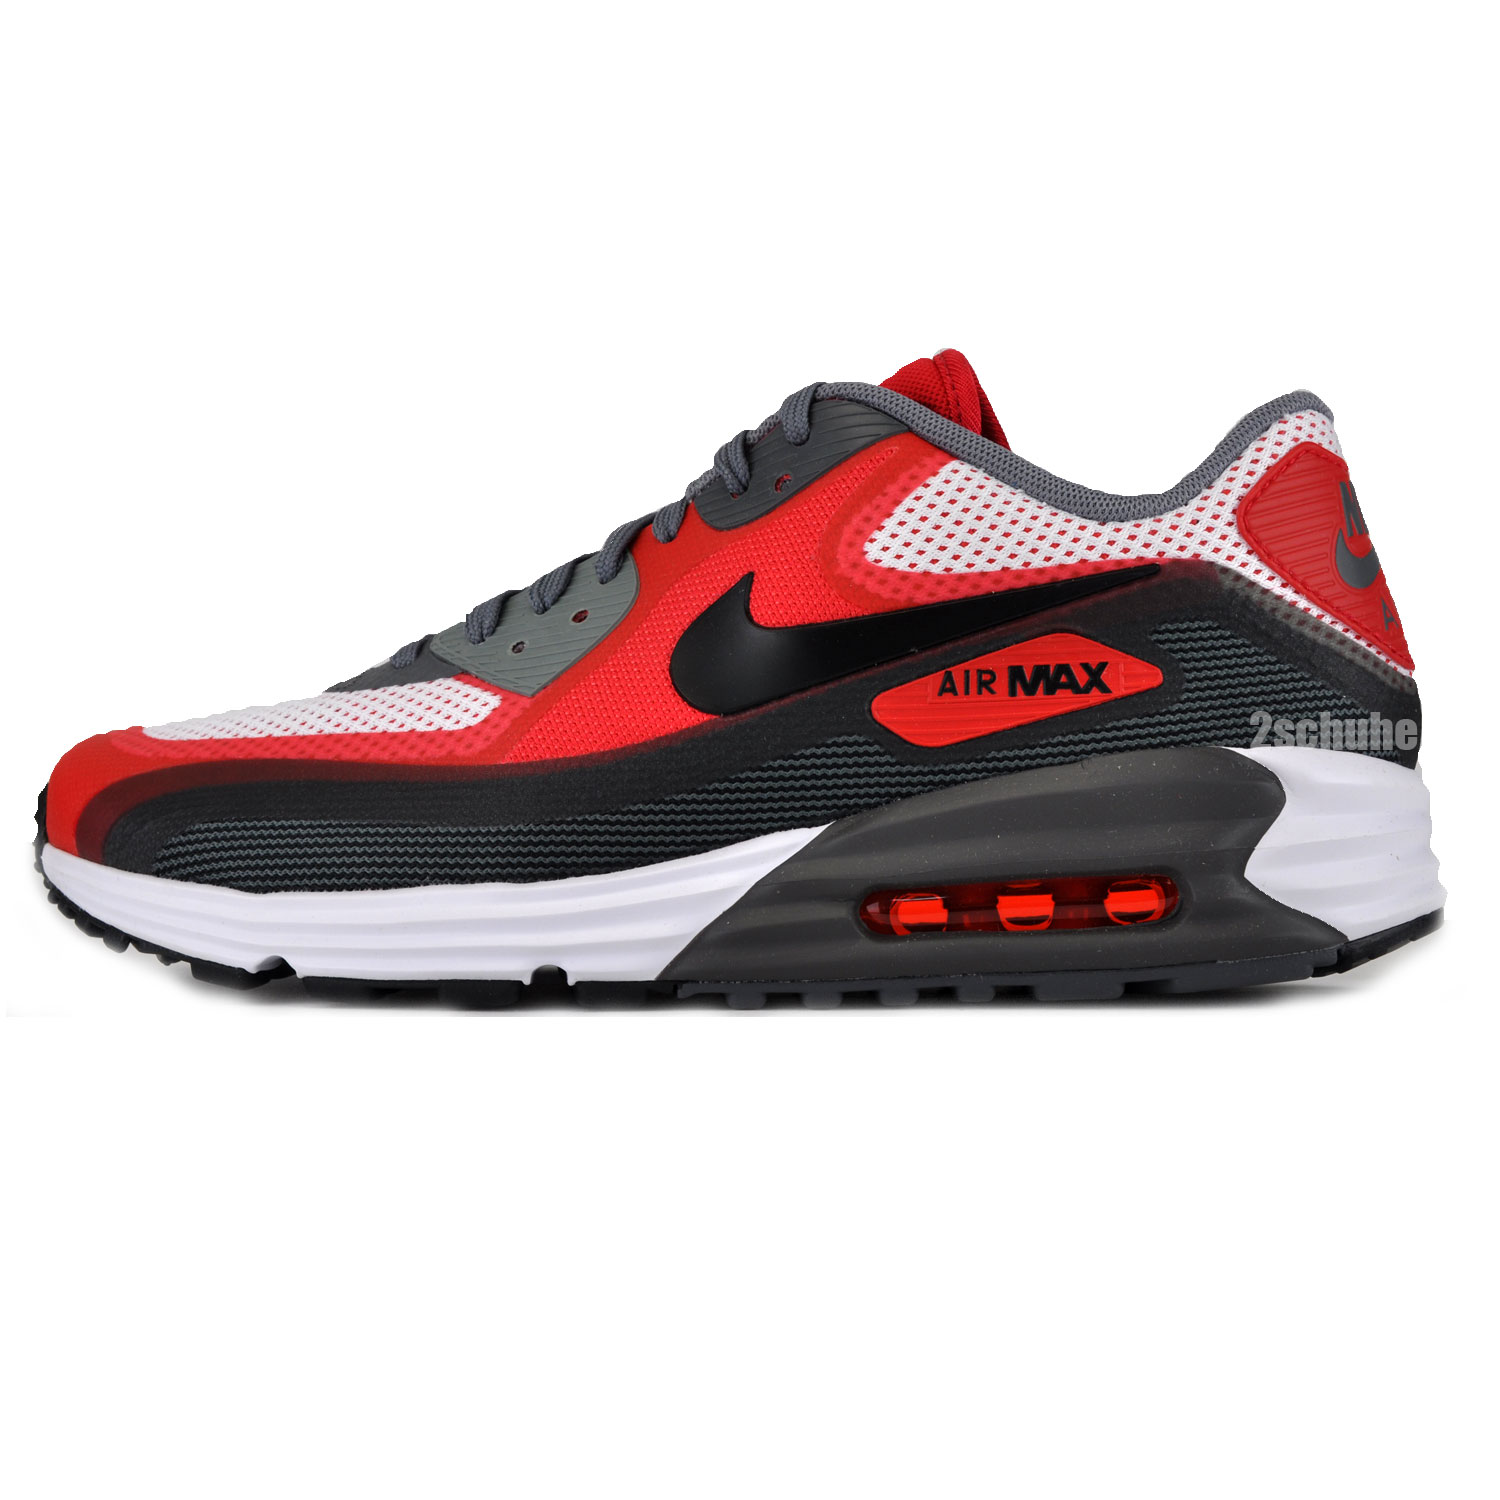 nike air max 90 premium 1 essential light lunar90 ltr 2014 command leather wmns ebay. Black Bedroom Furniture Sets. Home Design Ideas